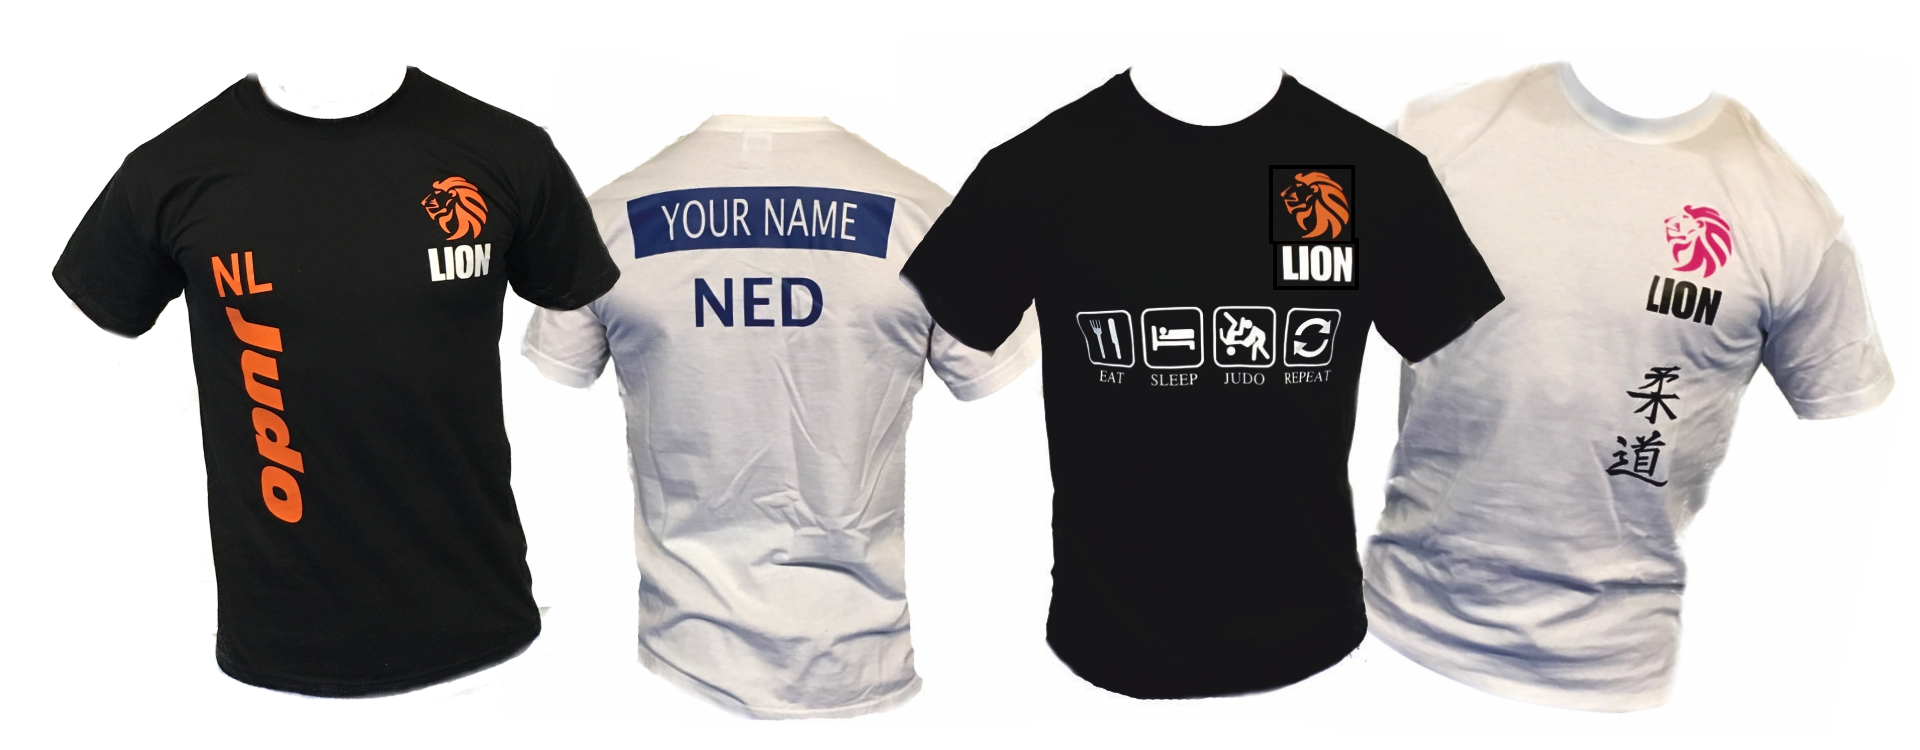 https://nieuwjudopak.be/wp-content/uploads/2017/09/shop-home-gallery-banner-Judo-T-shirts-Nieuw-Judopak.jpg